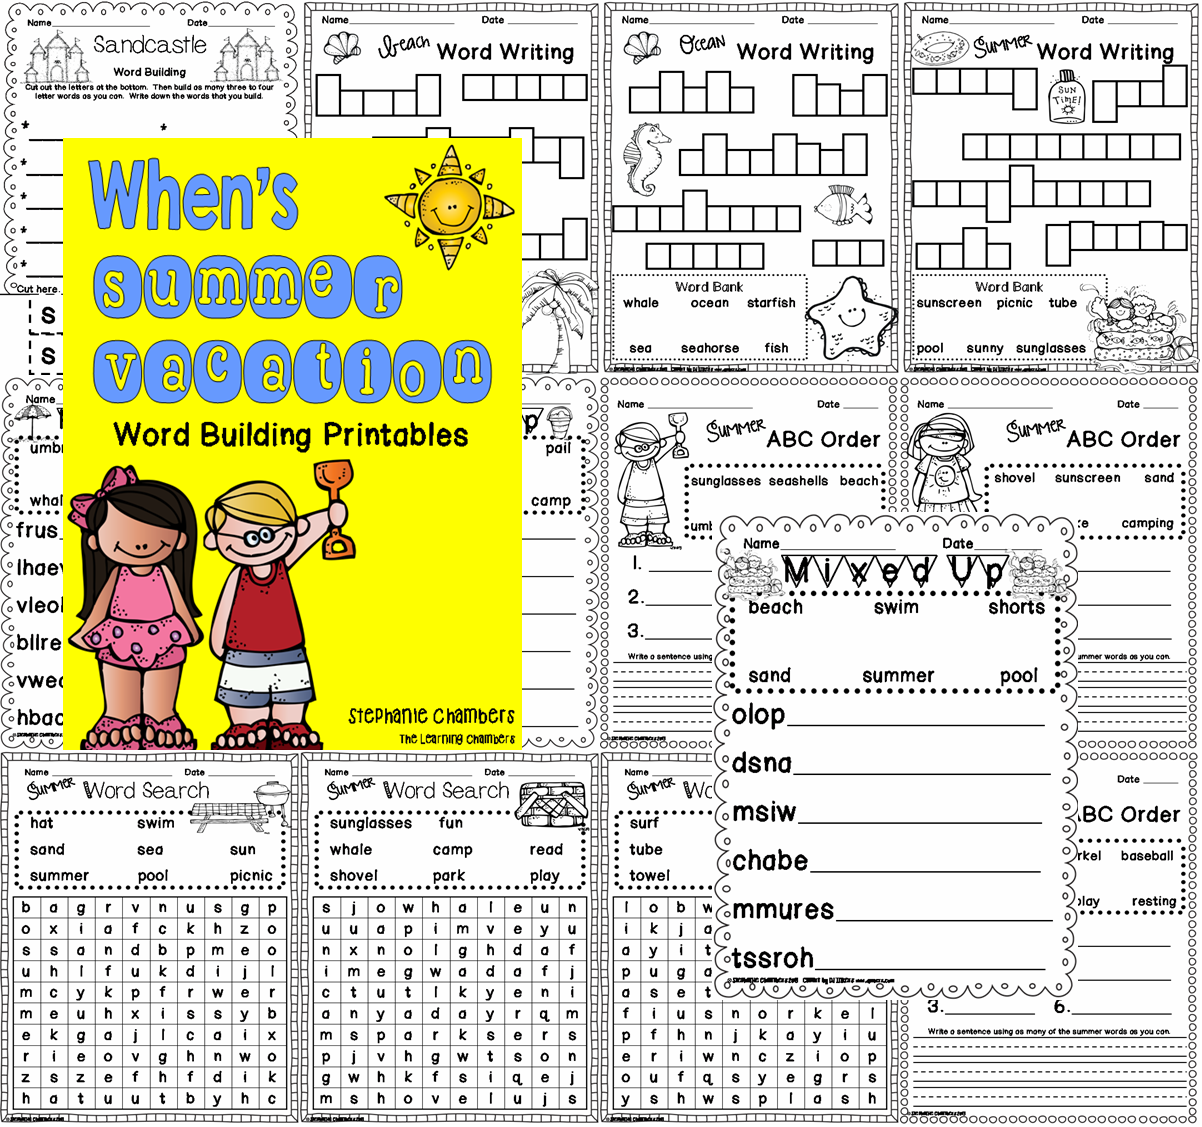 http://www.teacherspayteachers.com/Product/Whens-Summer-Vacation-Word-Work-Printables-692340